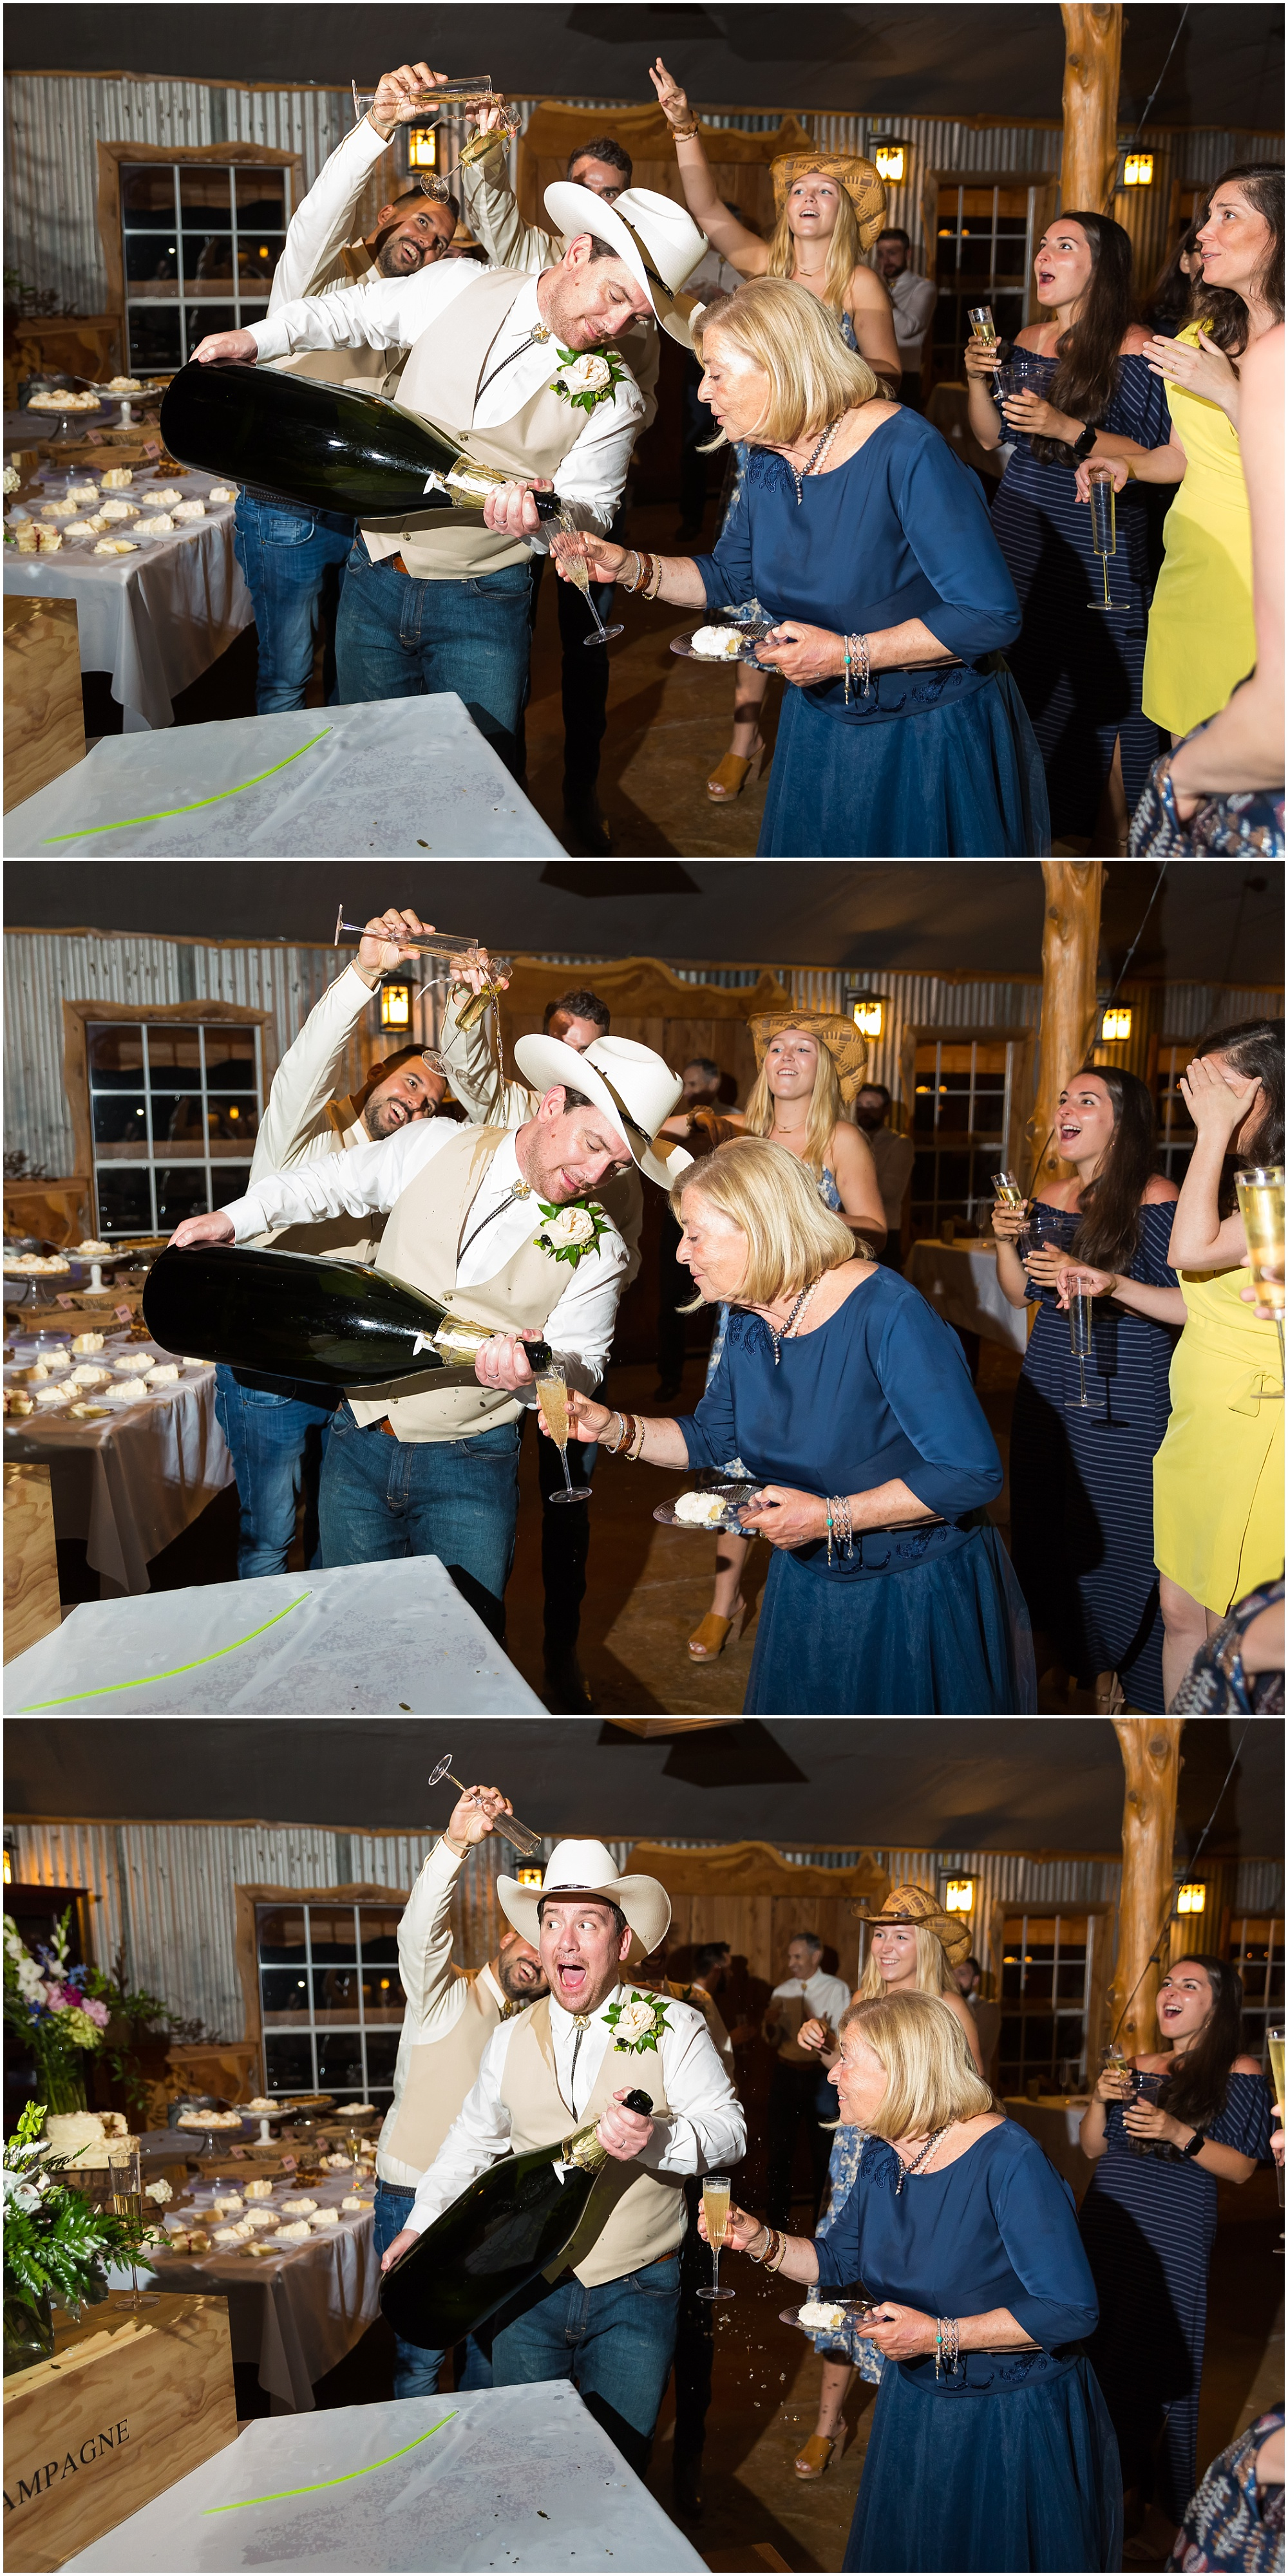 Groomsmen pour champagne on an unsuspecting groom during a wedding reception at Moon River Ranch | Jason & Melaina Photography | www.jasonandmelaina.com